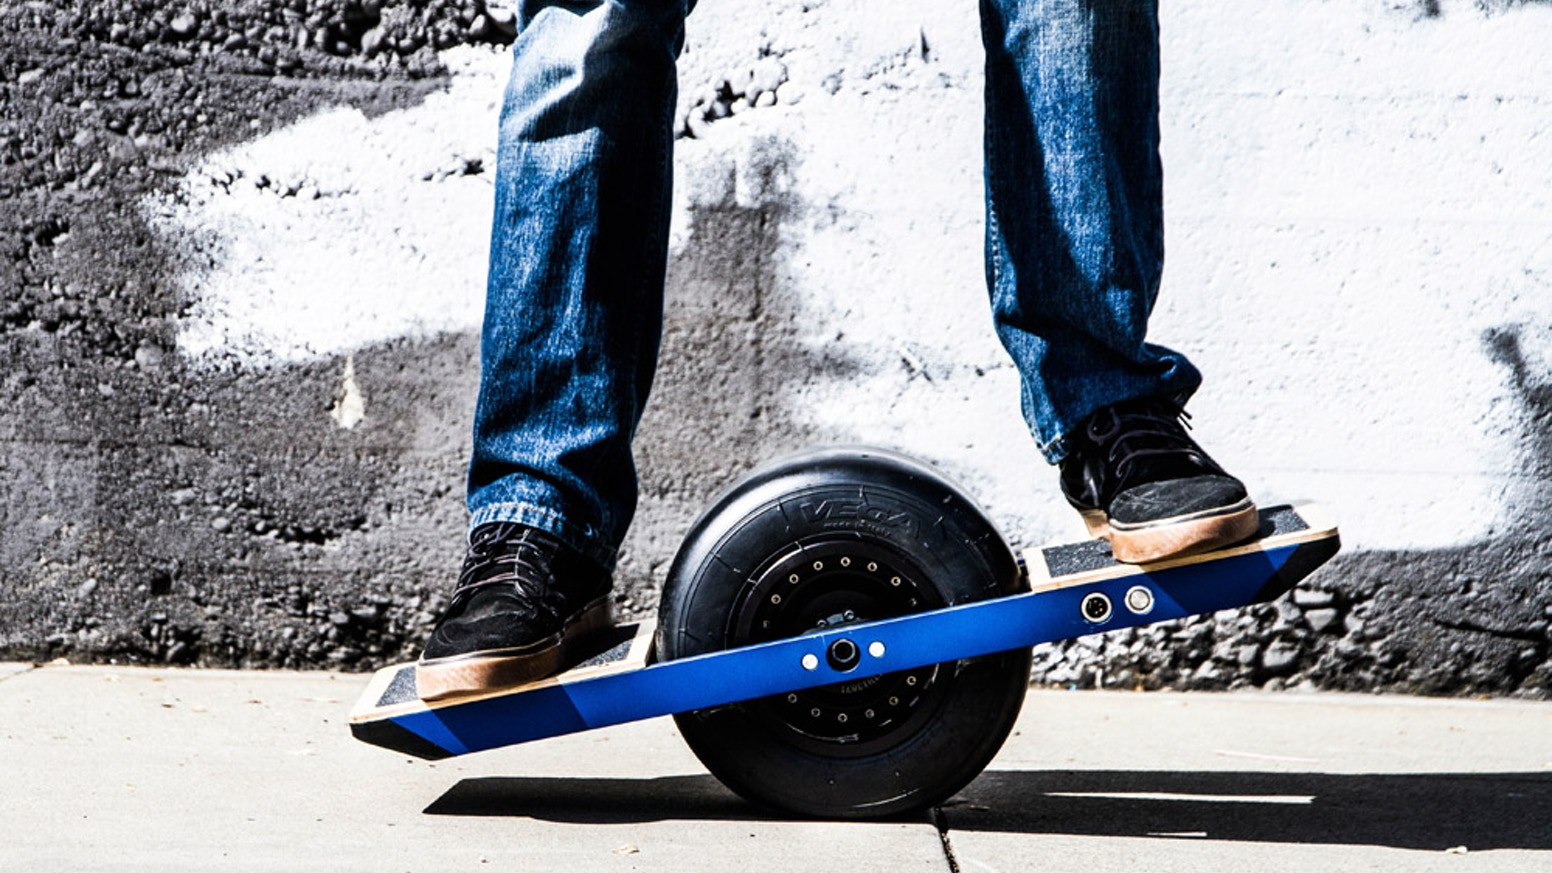 Onewheel The Revolutionary Electric Boardsport That Gives You Feeling Of Flying